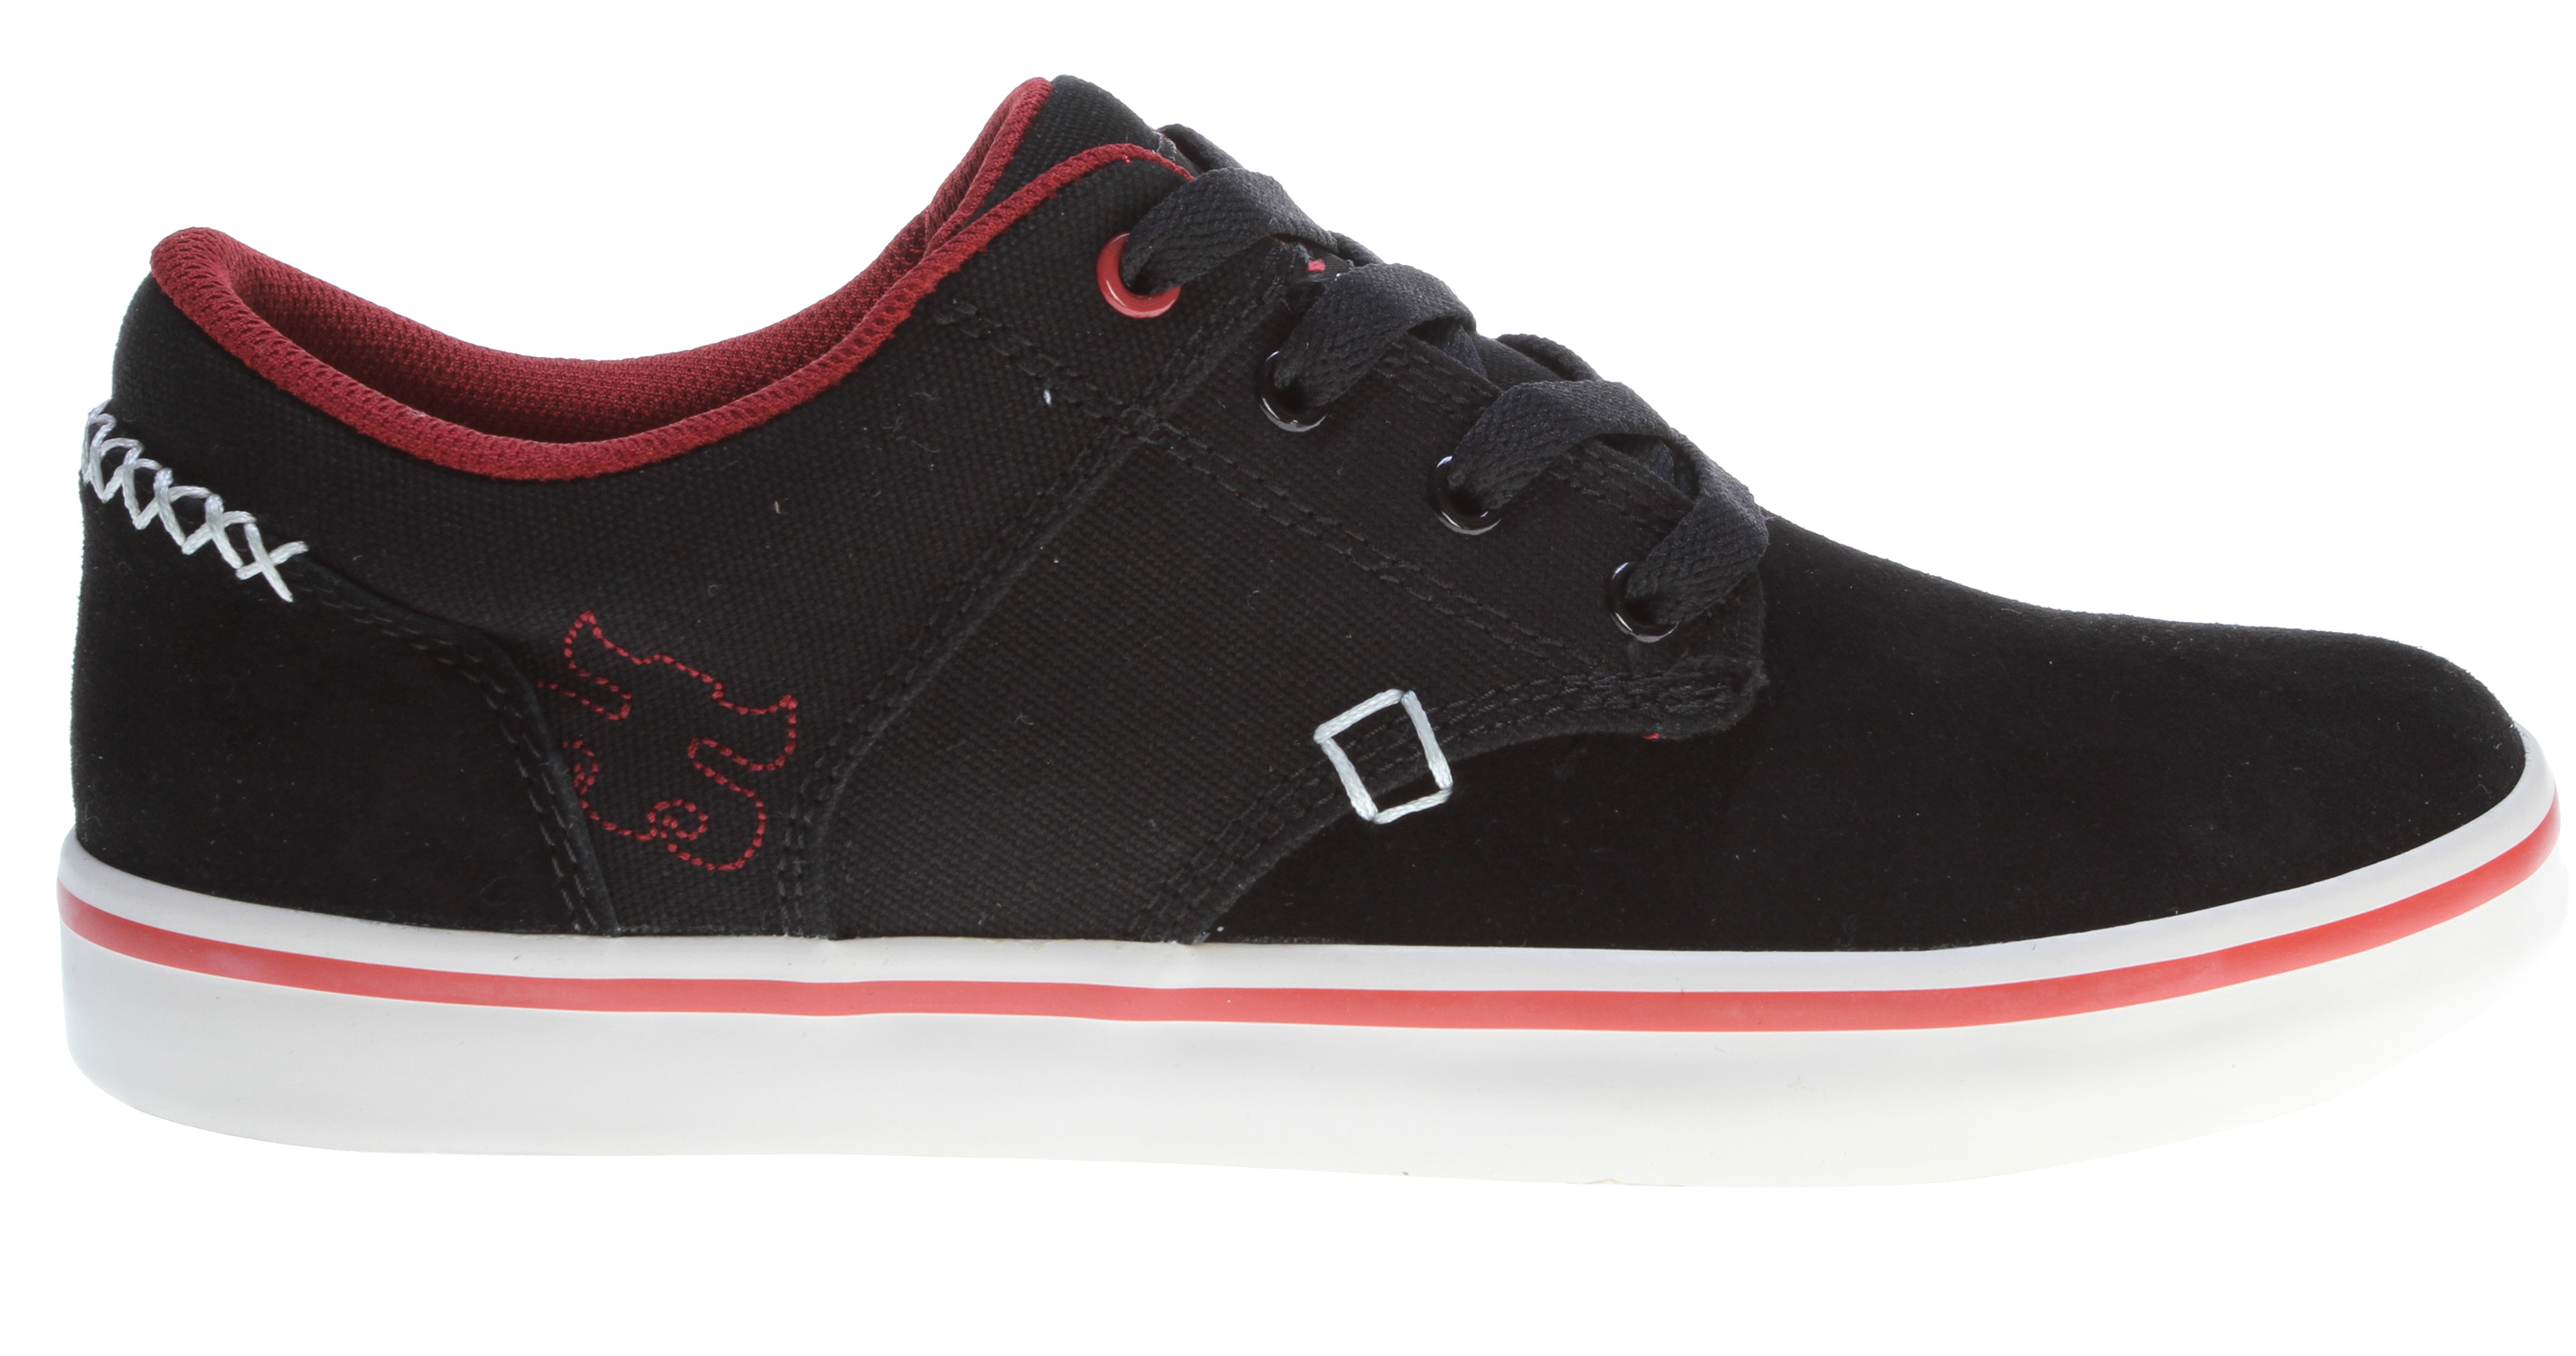 Skateboard Inspired by Kenny Reed, this classic vulc skate shoe features a clean suede toe, reinforced ollie area and Reed's iconic cross stitch detail around the heel. - $48.95